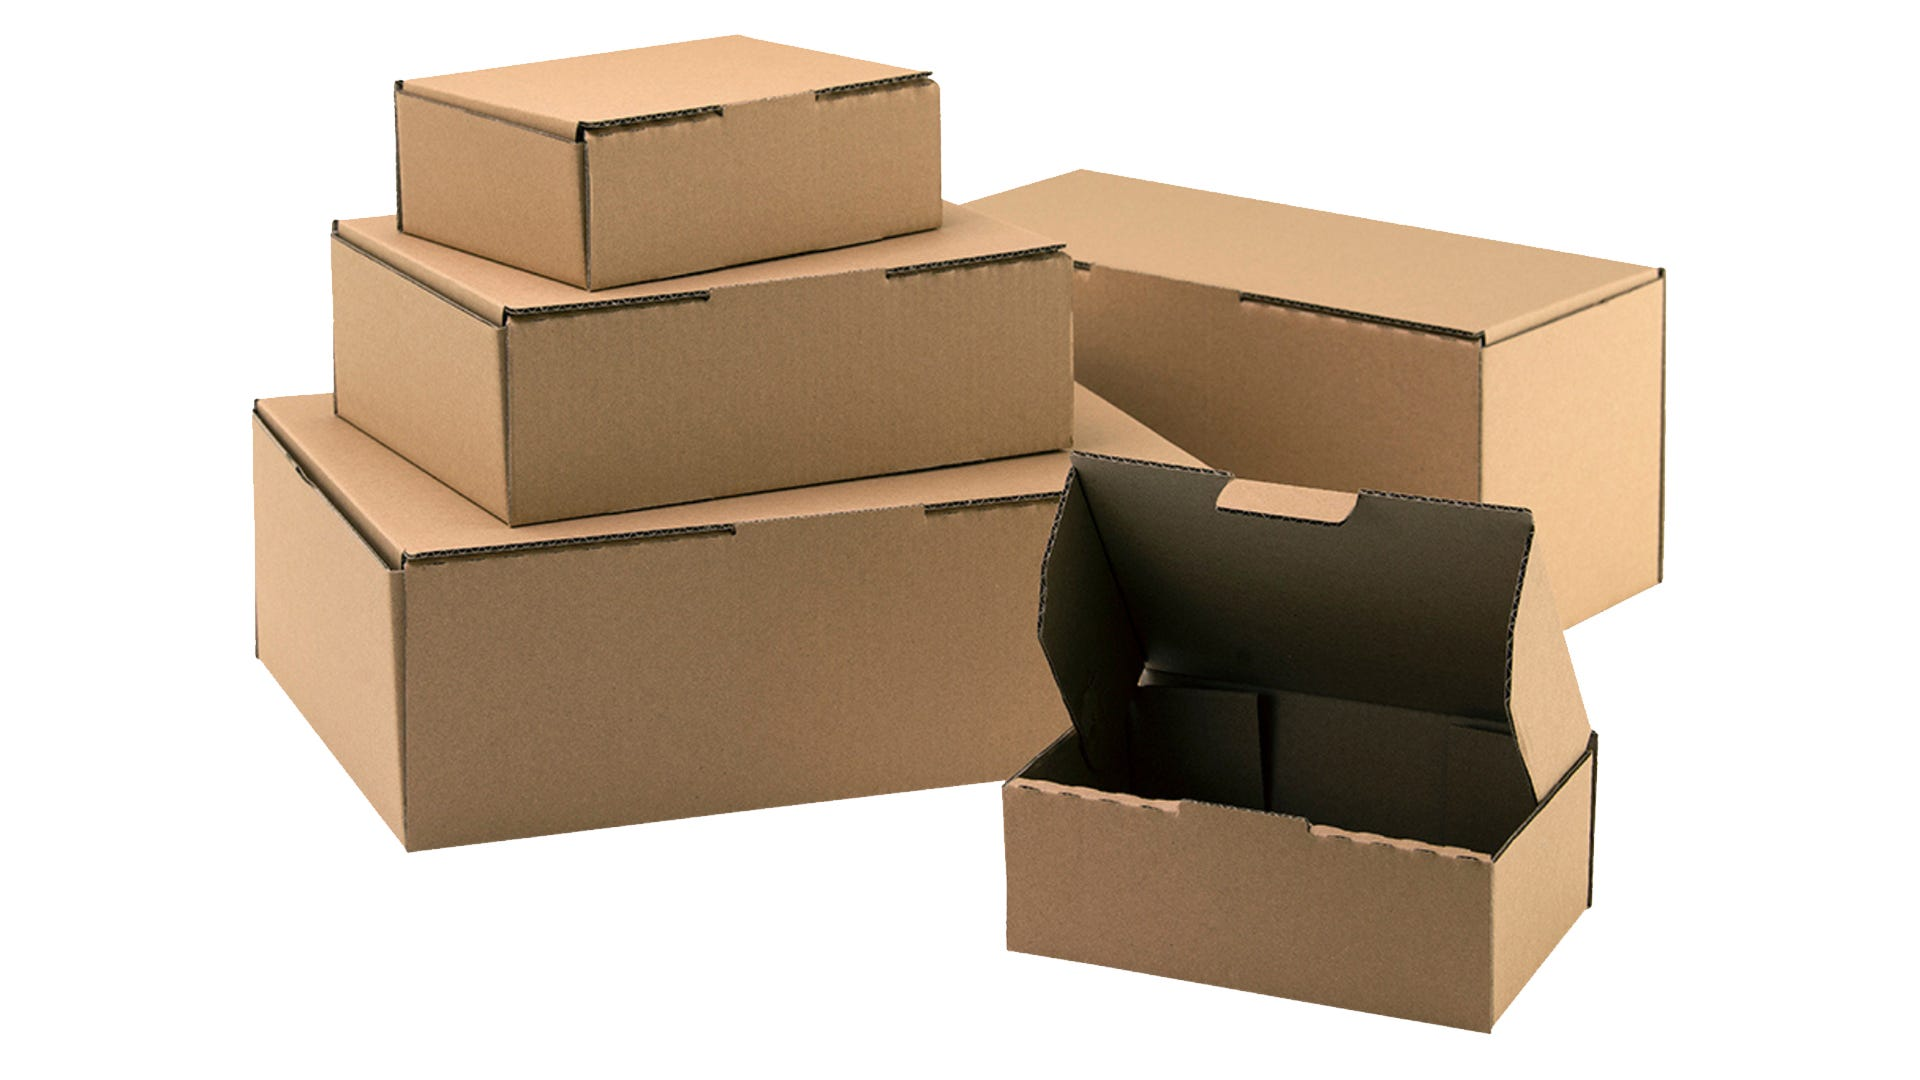 Signet's Own Mailing Boxes